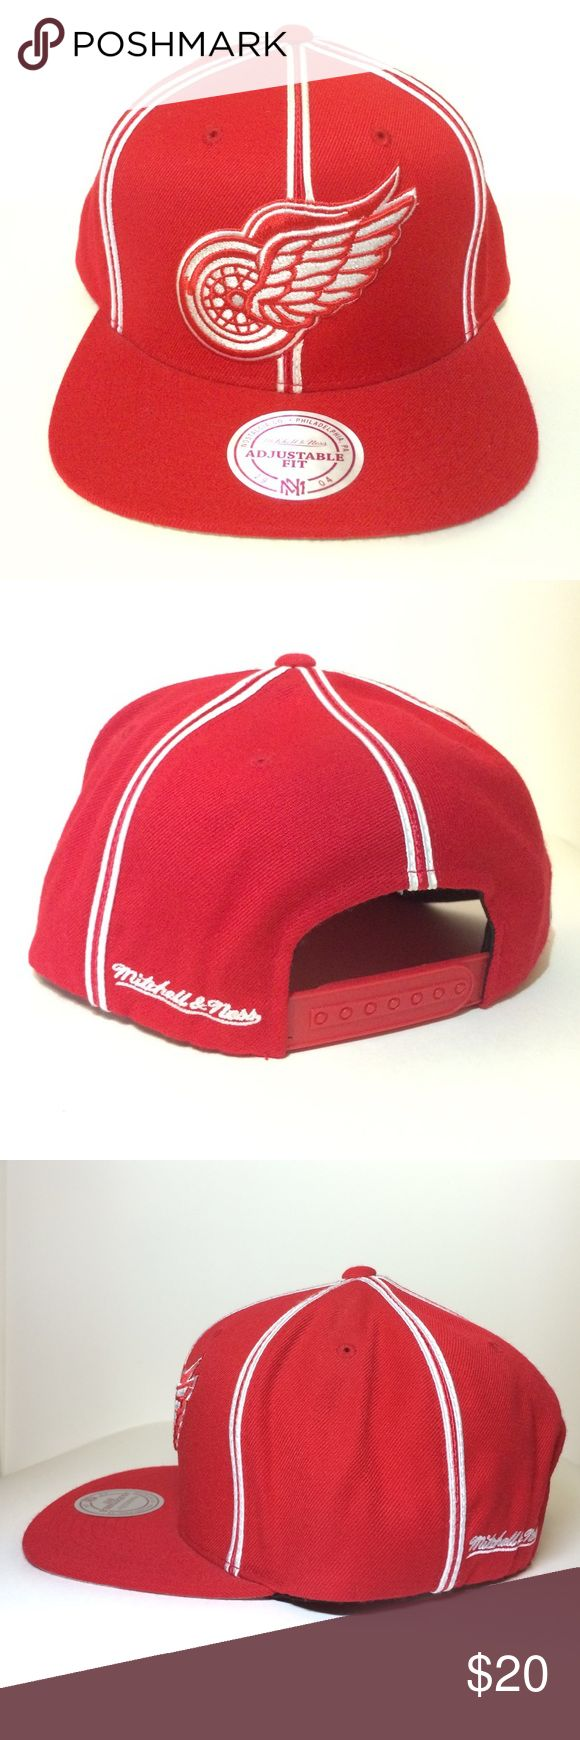 Mitchell & Ness Snapback Hat For sale is a 100% authentic DETROIT RED WINGS Mitchell & Ness snapback hat (BRAND NEW/NEVER WORN). Purchased directly from their Philadelphia store location, Mitchell & Ness is praised for their fine quality team memorabilia. This hat is part of their NHL Vintage Hockey collection and has been kept in storage since I acquired it in 2012. This flat brimmed hat has a structured high crown fit in the front with an unstructured fit in the back. #goals #rare…